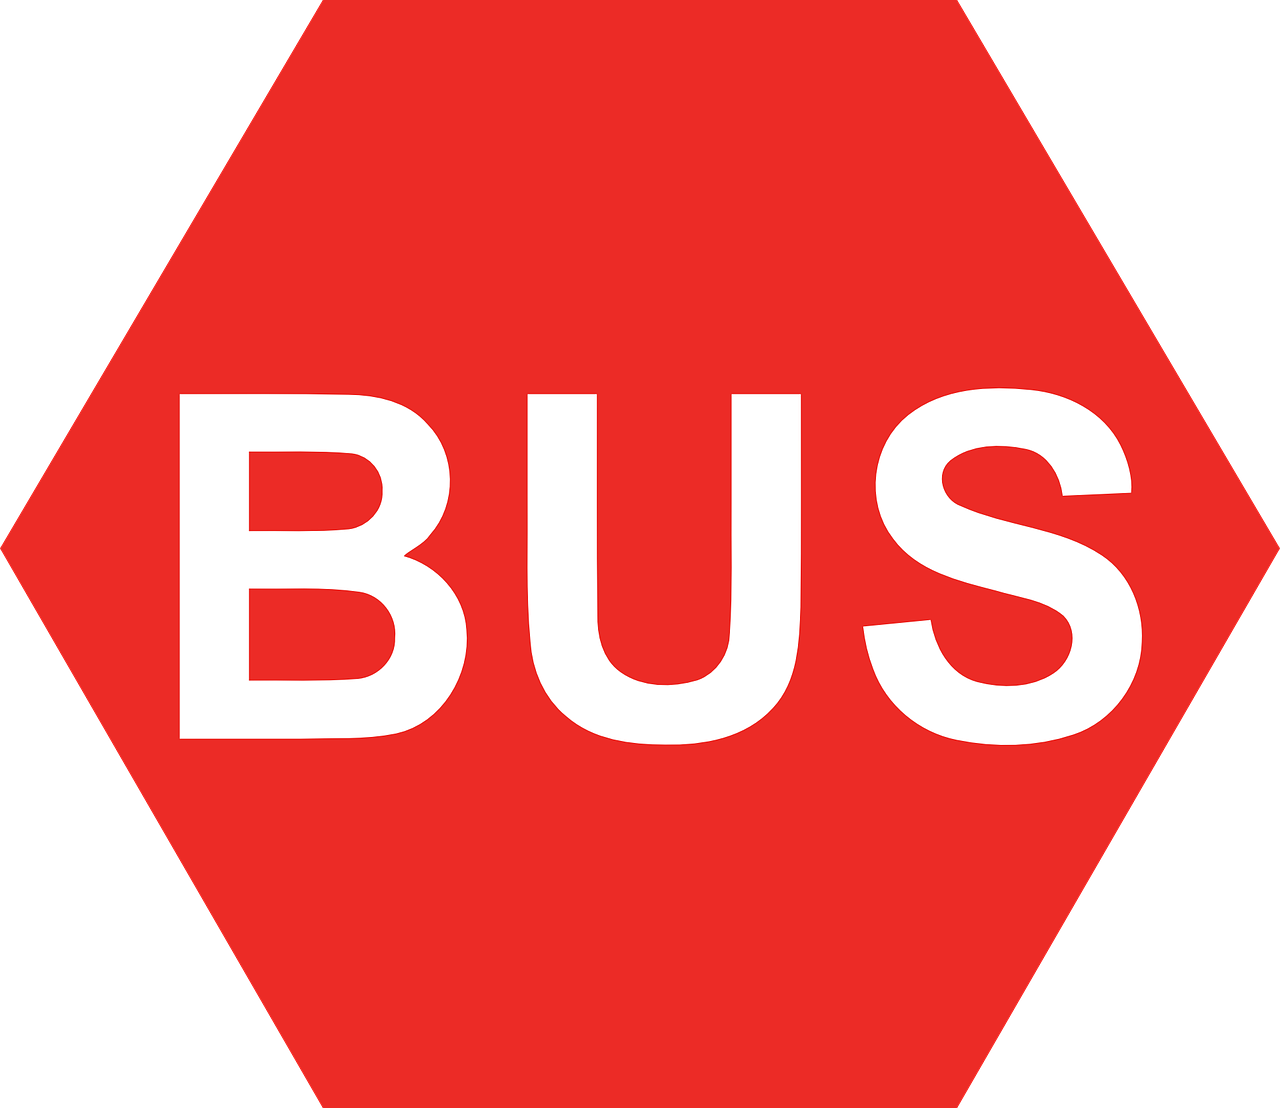 Transportation Public Bus Logo